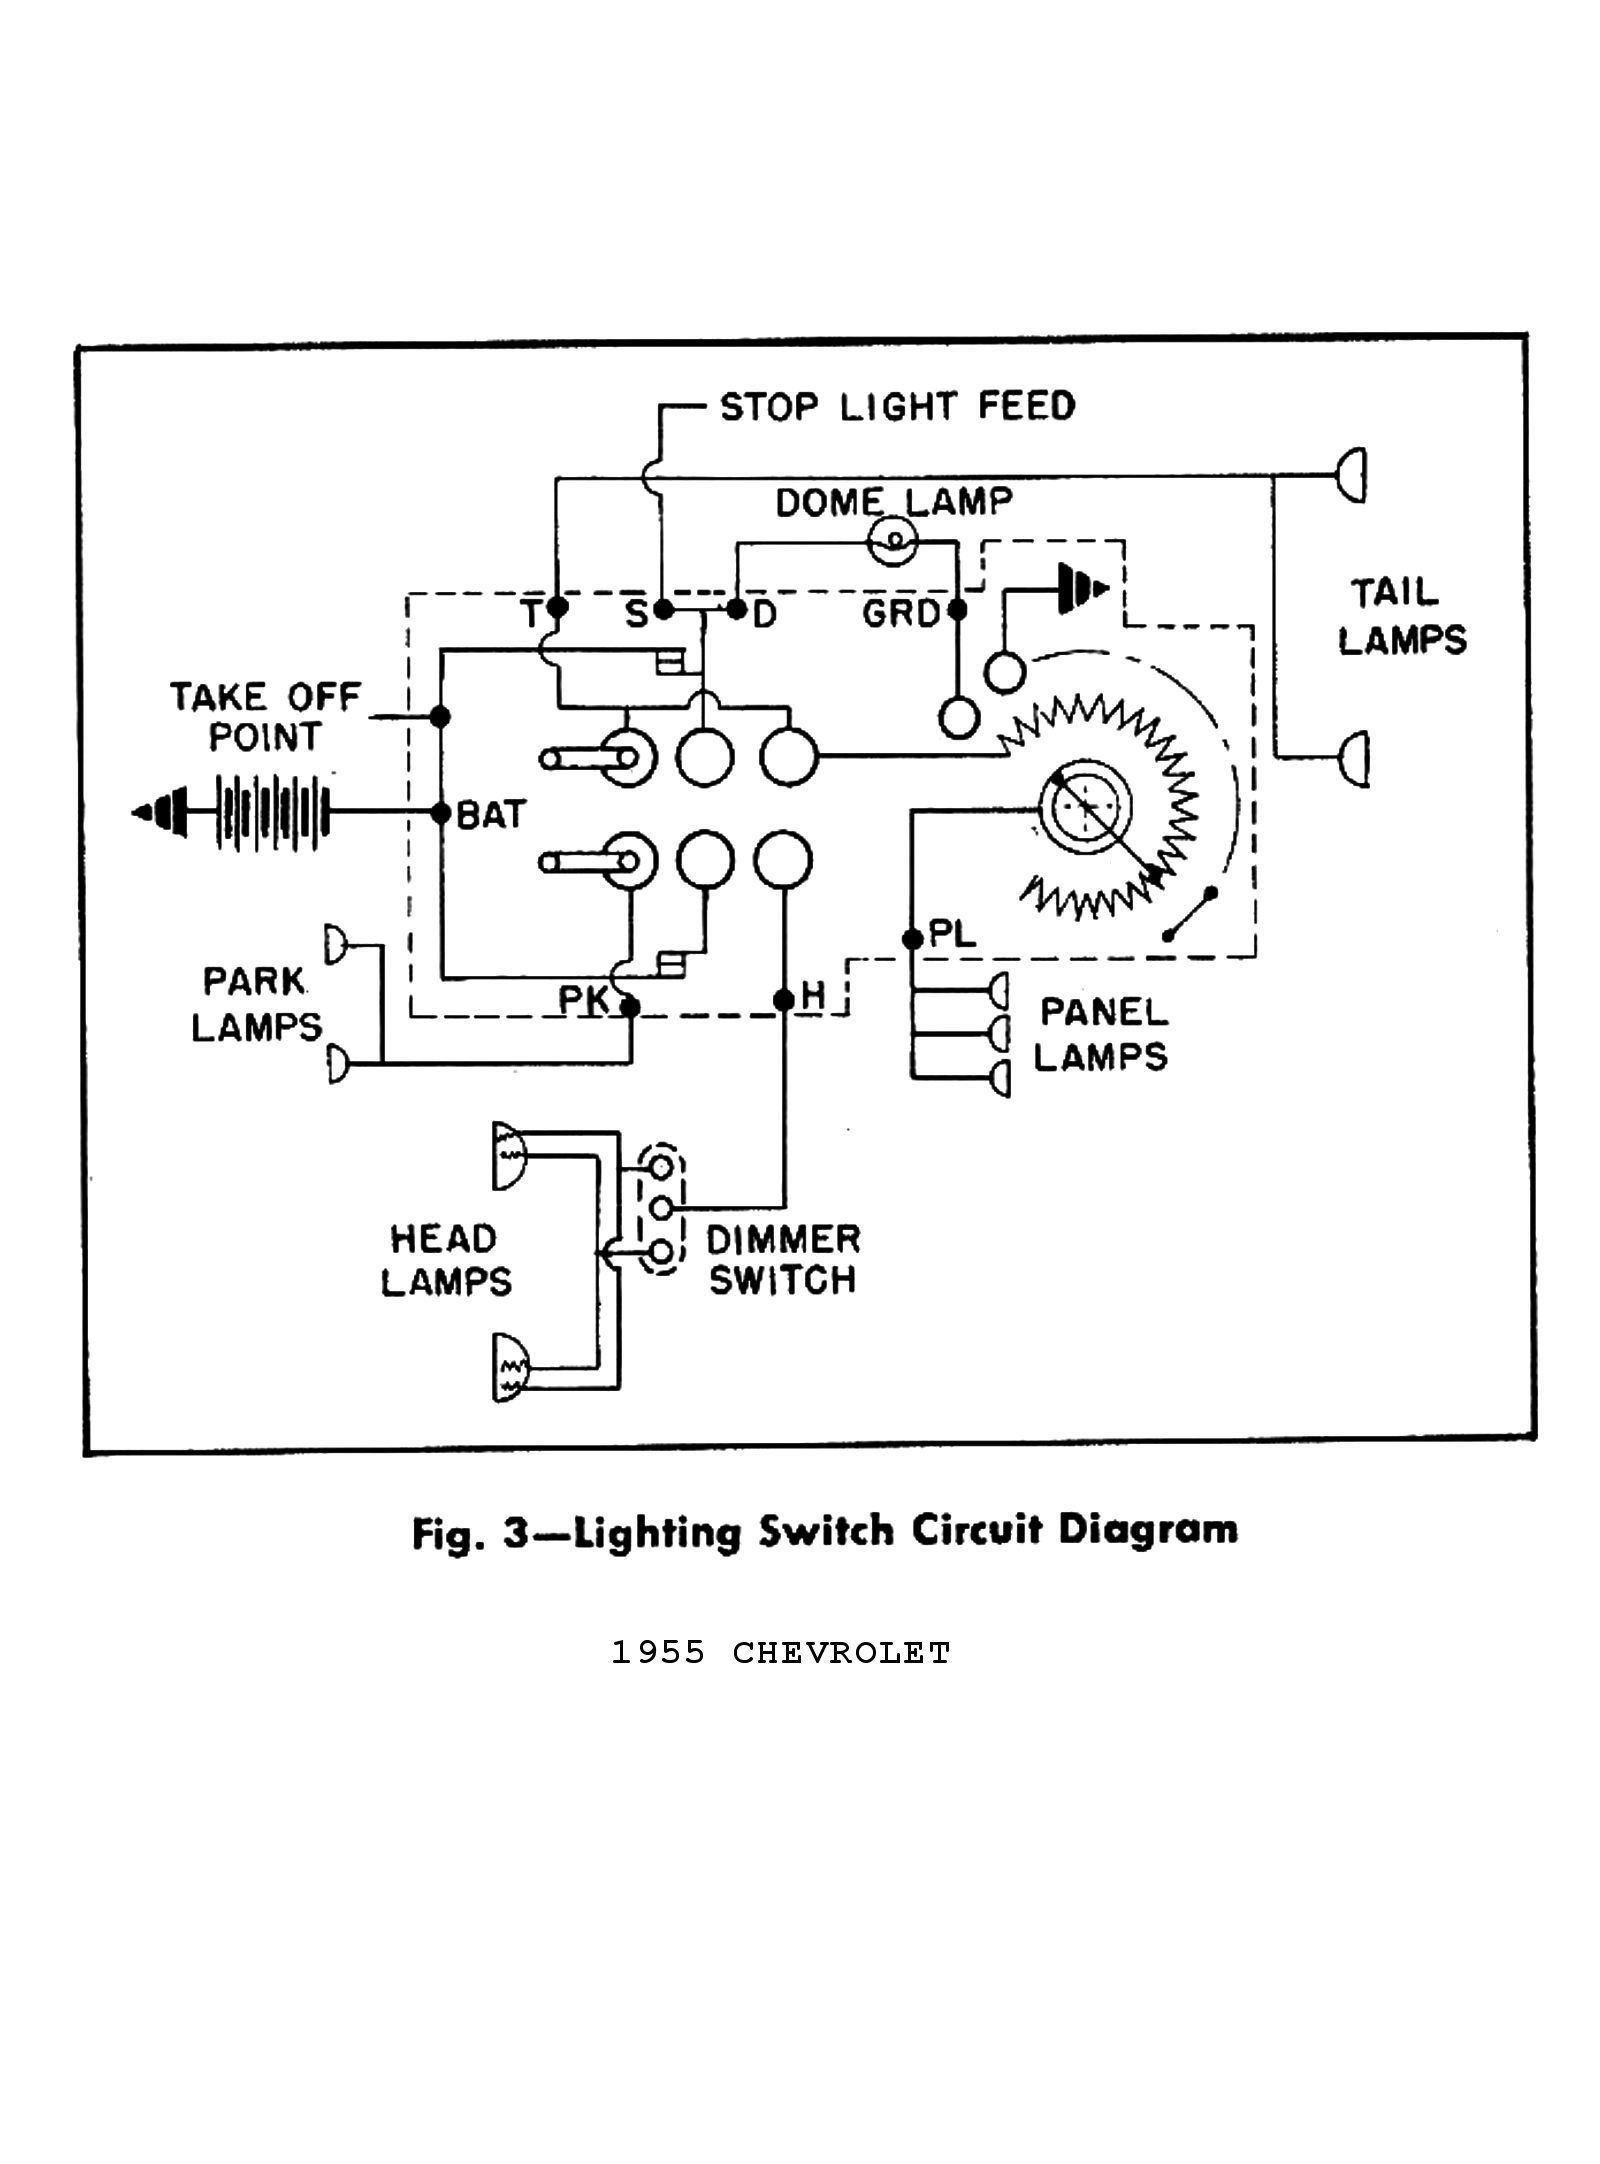 light switch wiring for 55 chevrolet data diagram schematic 51 turn signal switch and wiring question chevytalk free source 1958 chevrolet steering  [ 1600 x 2164 Pixel ]